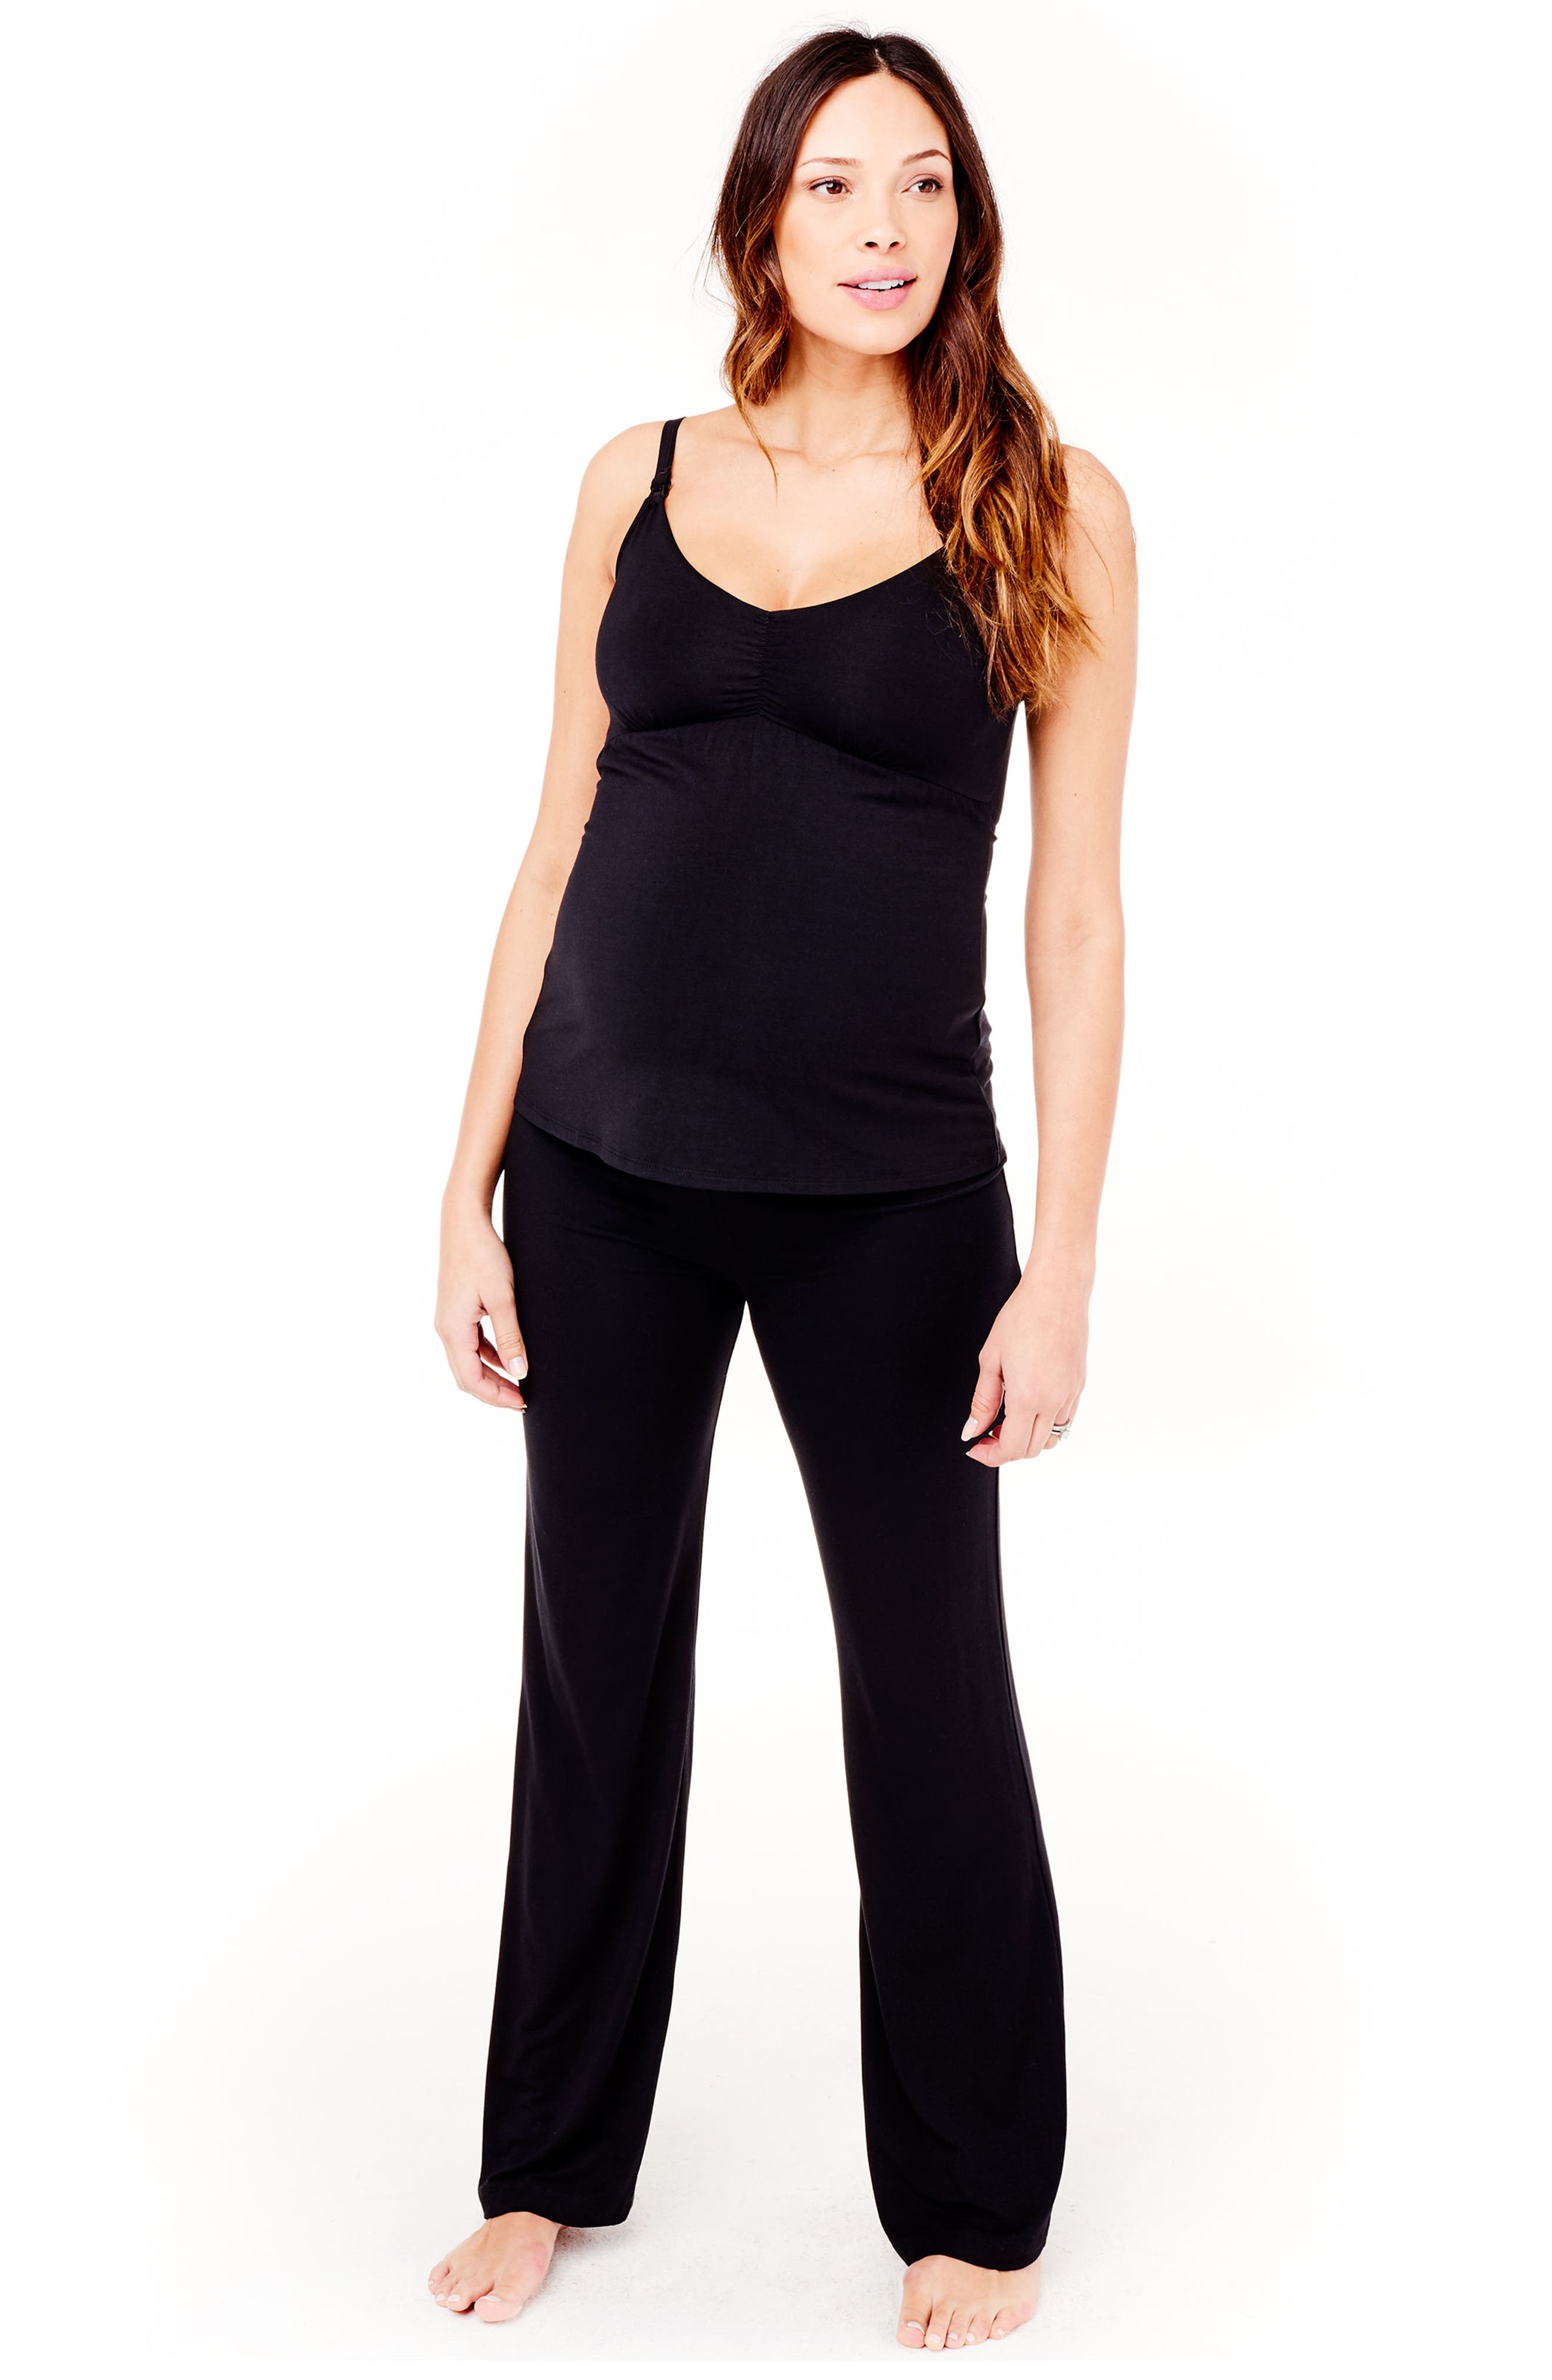 Maternity Lounge Pants,                             Alternate thumbnail 6, color,                             Jet Black